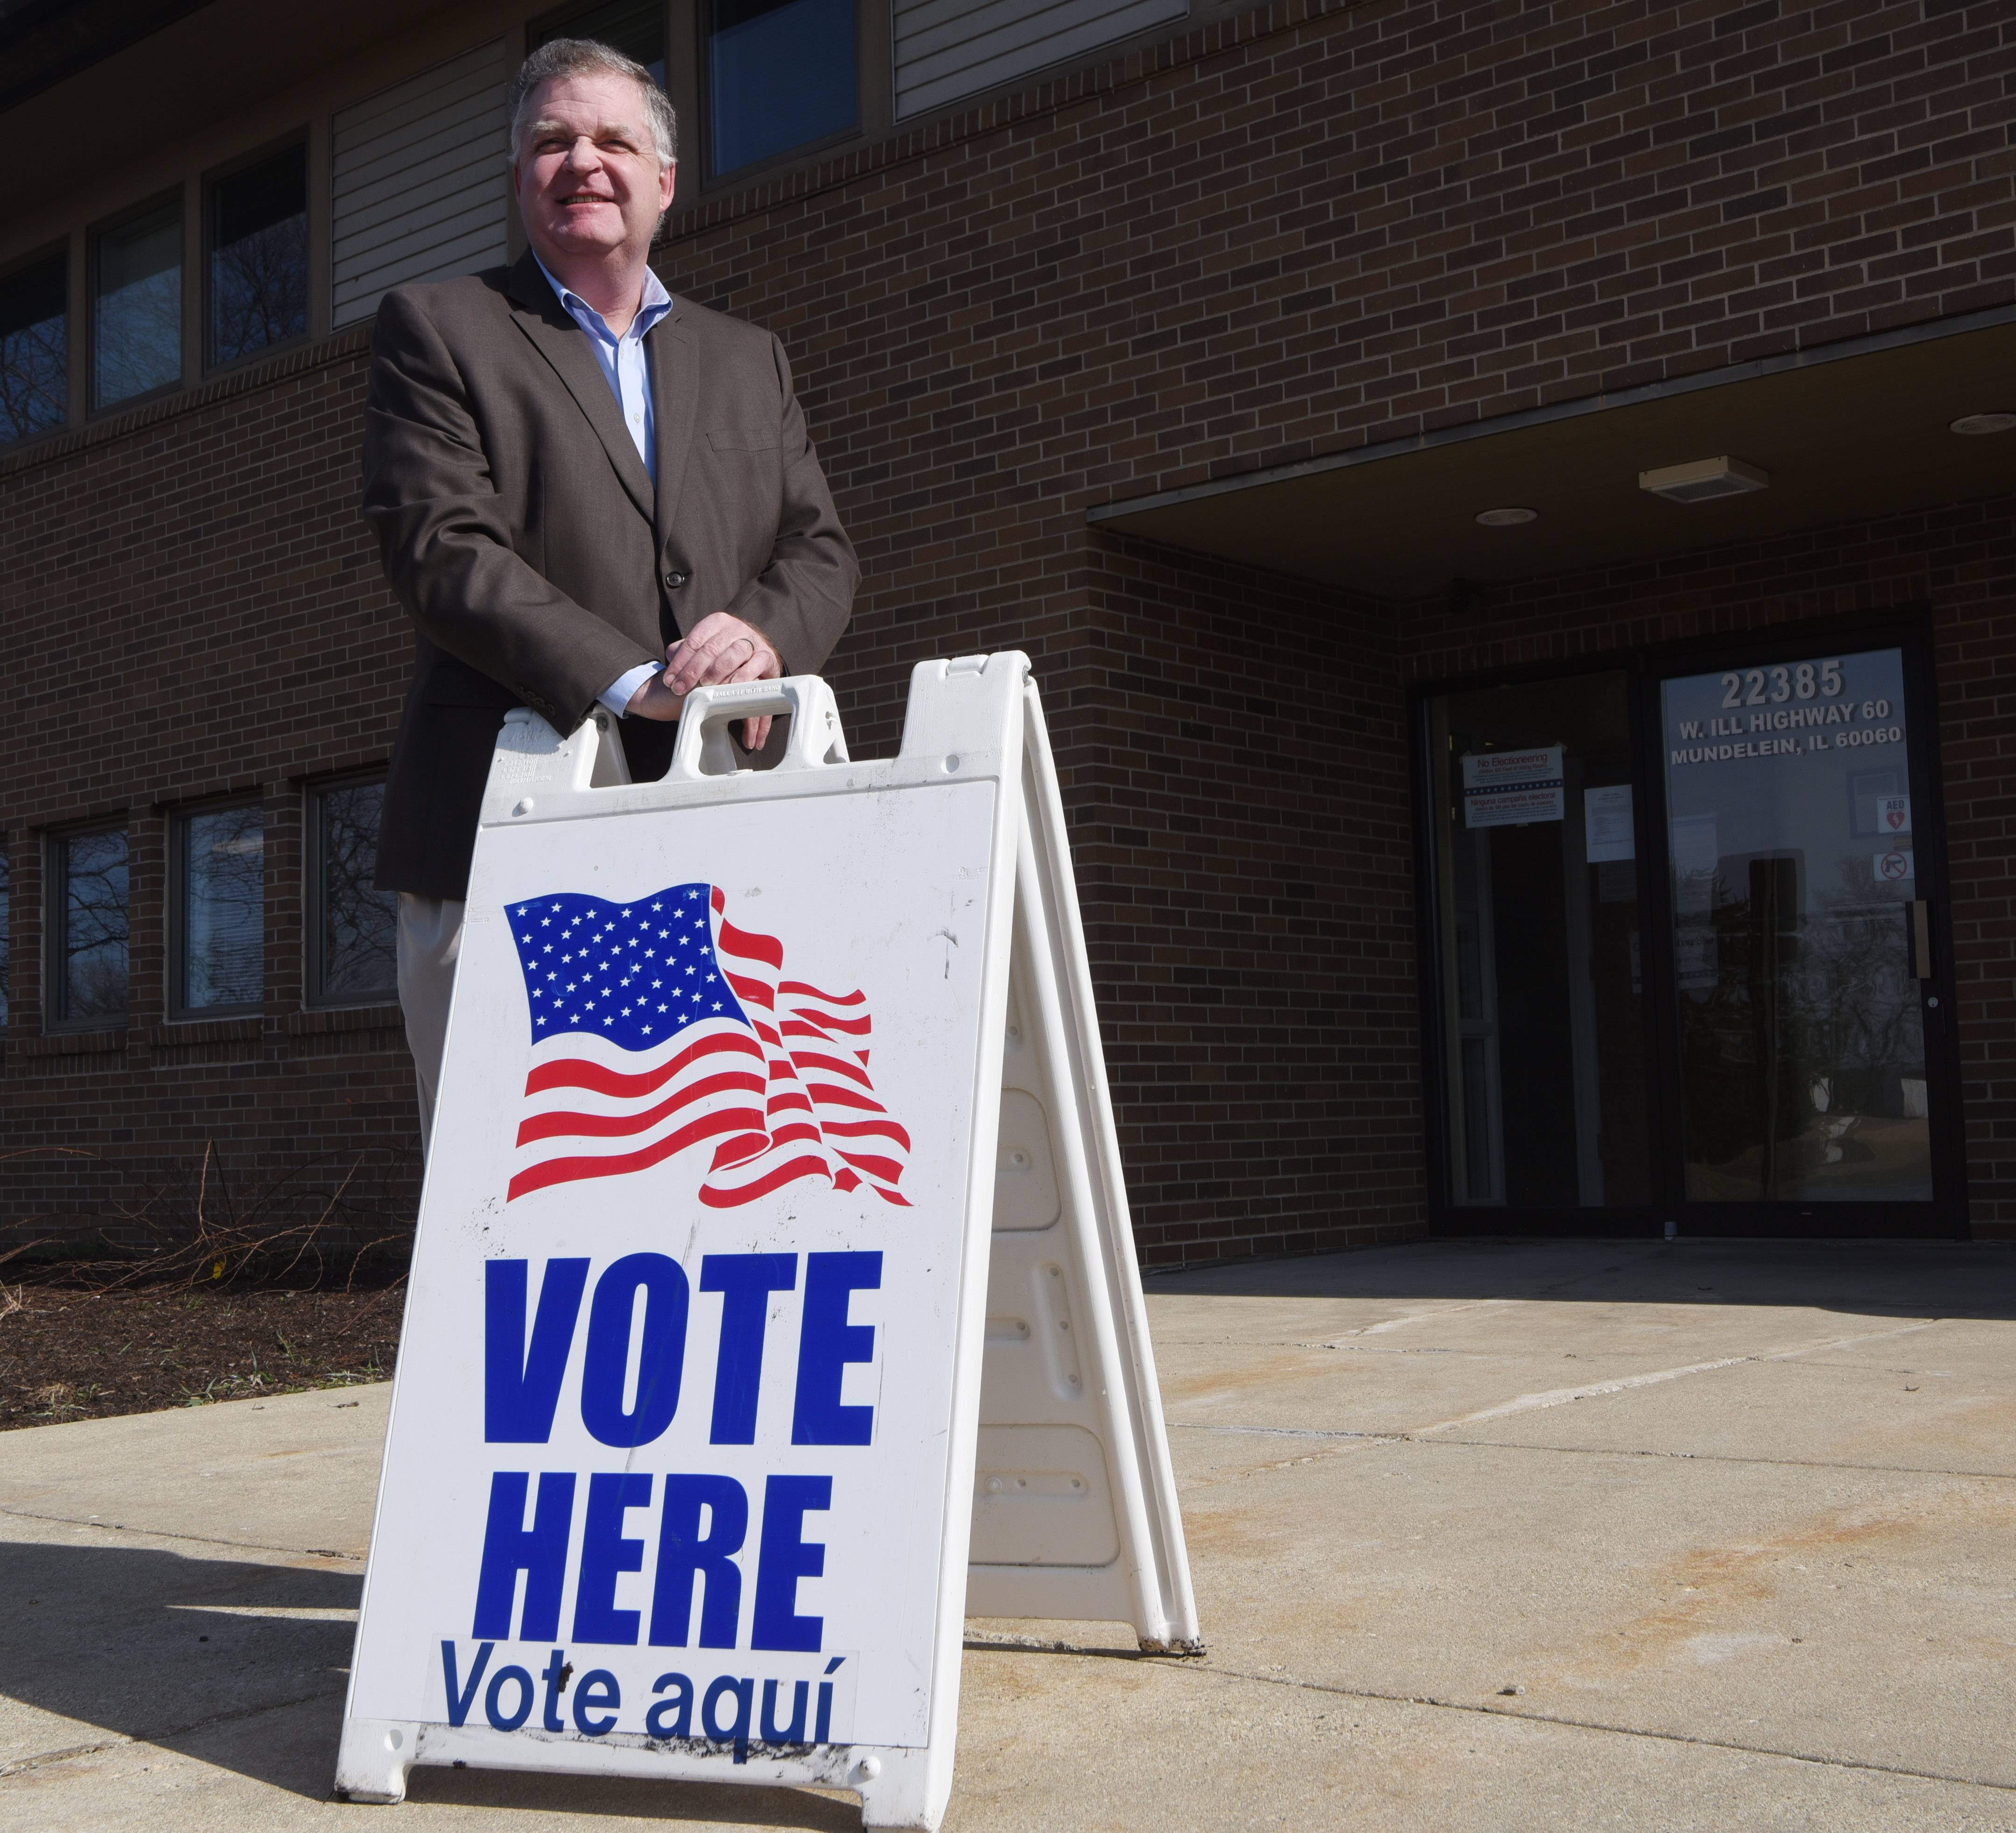 Local elections have big impact on tax bills, but few vote